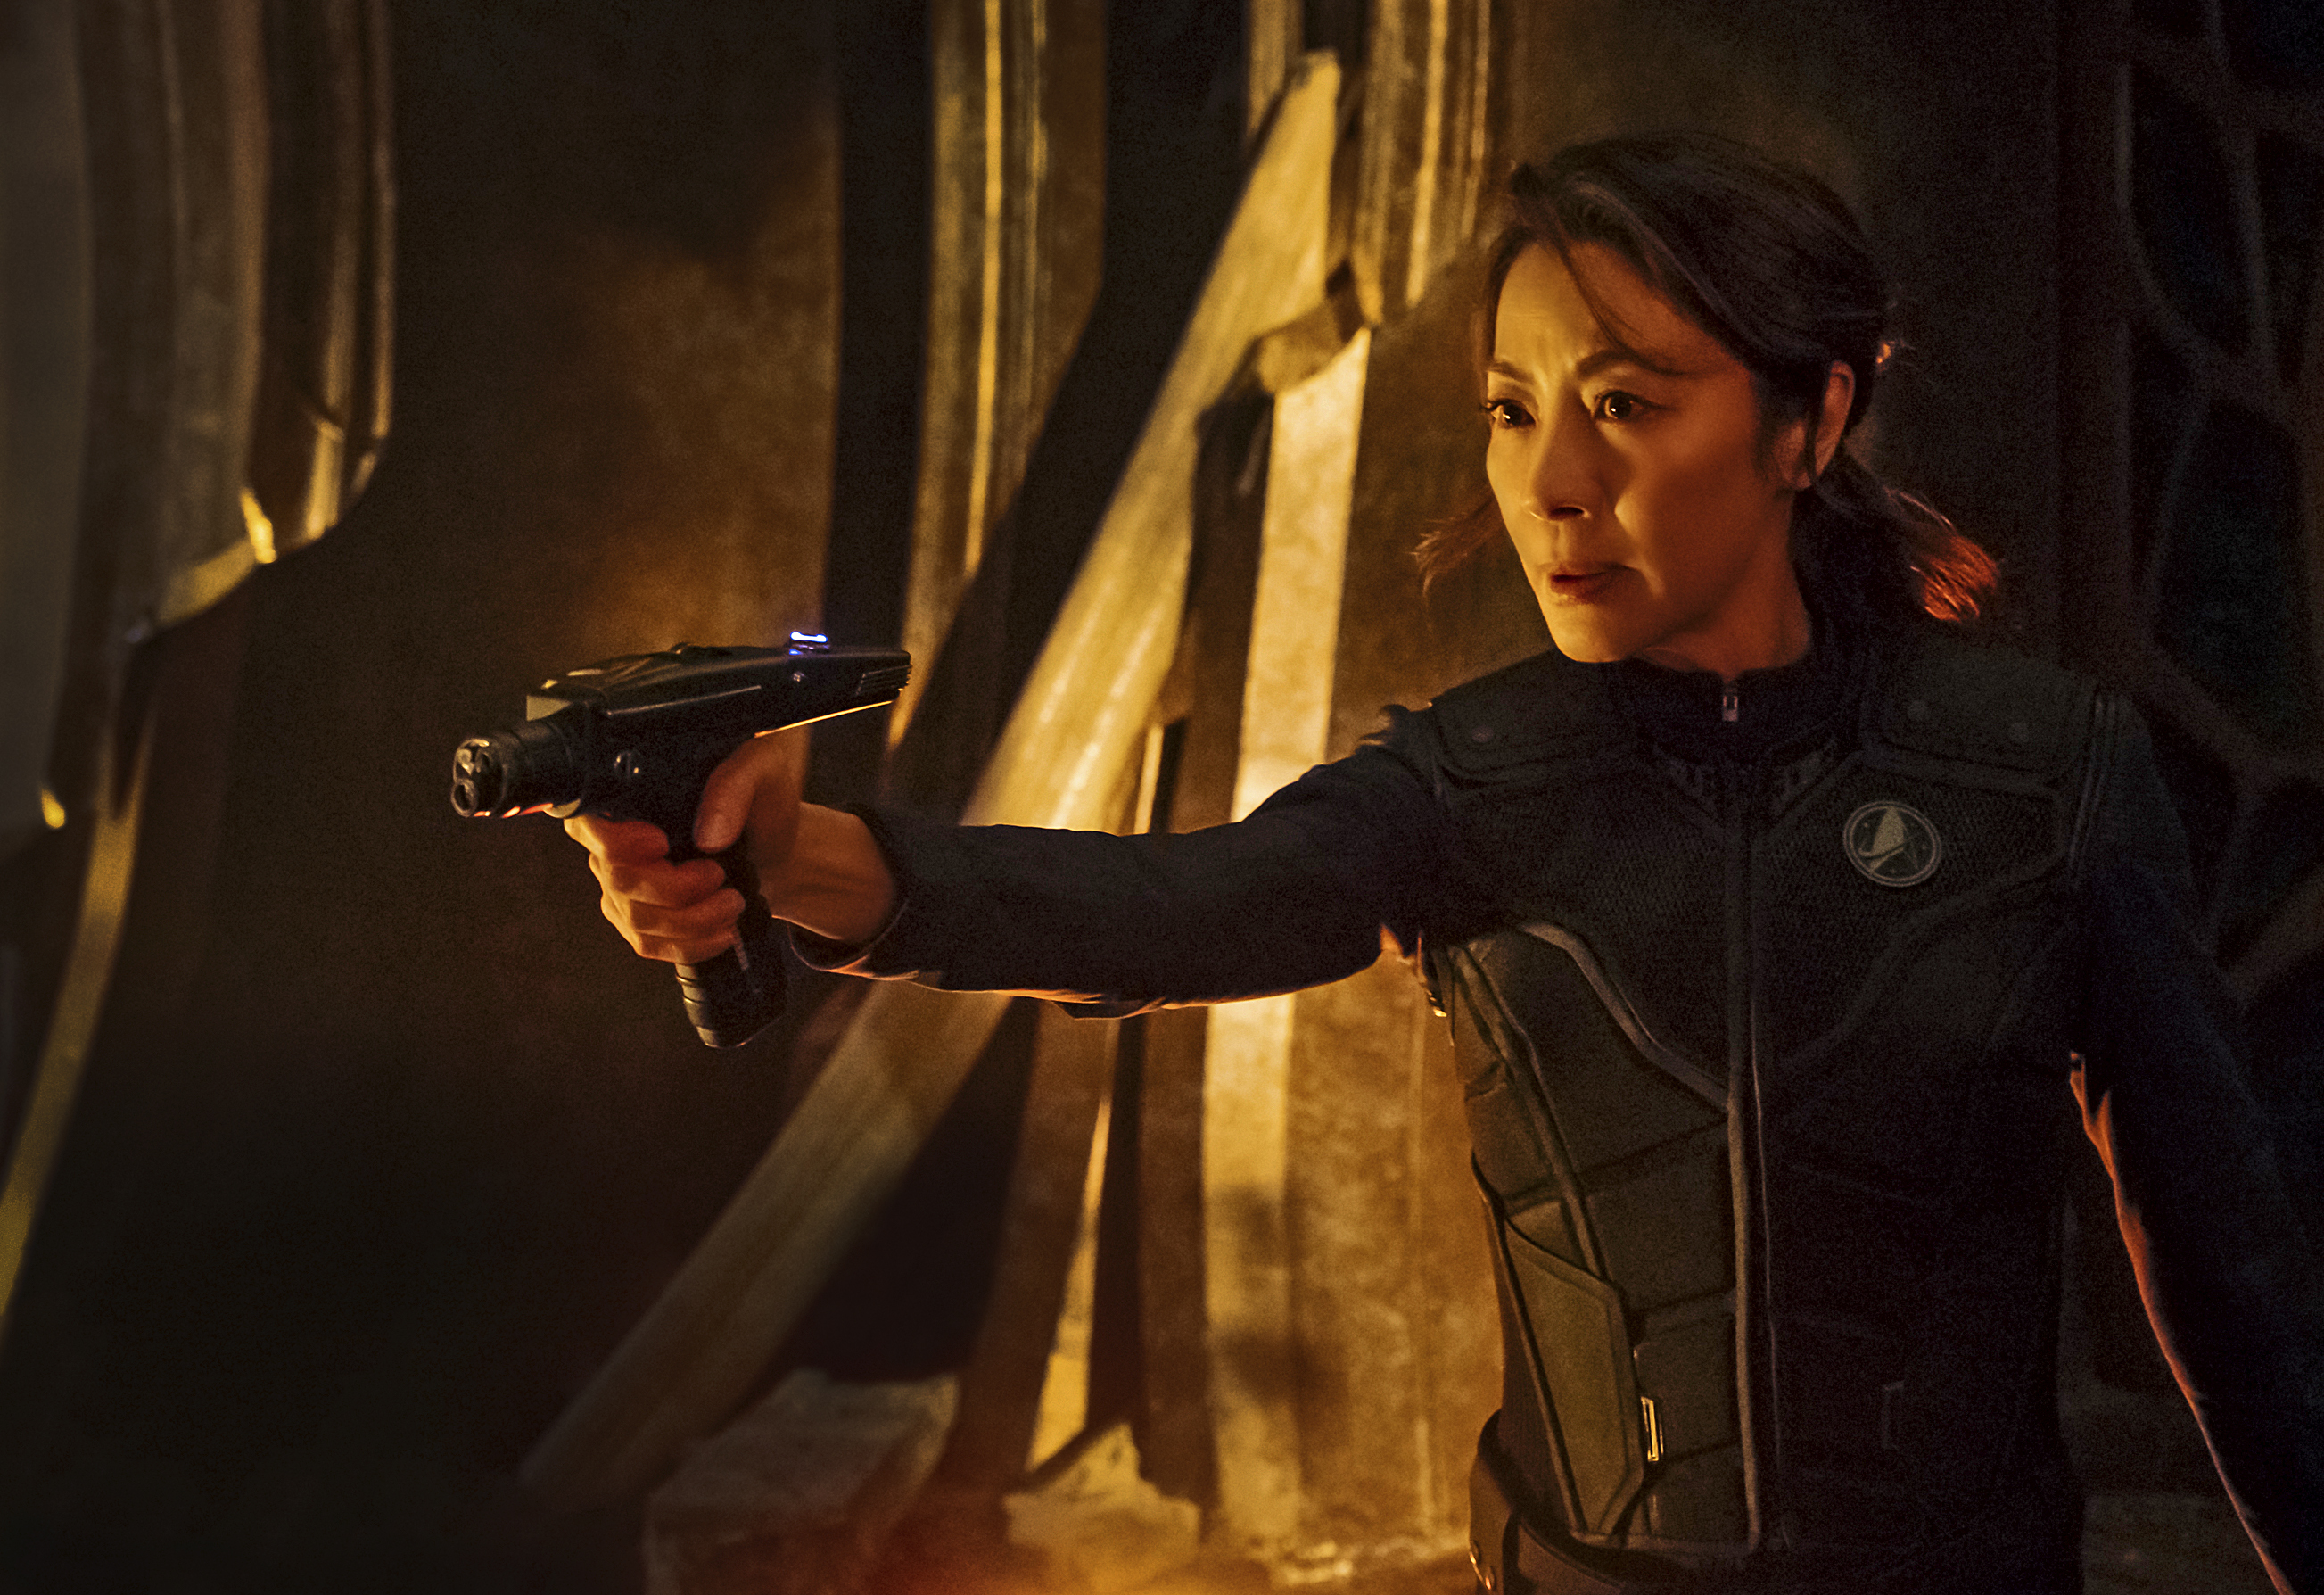 Pictured: Michelle Yeoh as Captain Philippa Georgiou. STAR TREK: DISCOVERY coming to CBS All Access.  Photo Cr: Jan Thijs  � 2017 CBS Interactive. All Rights Reserved.